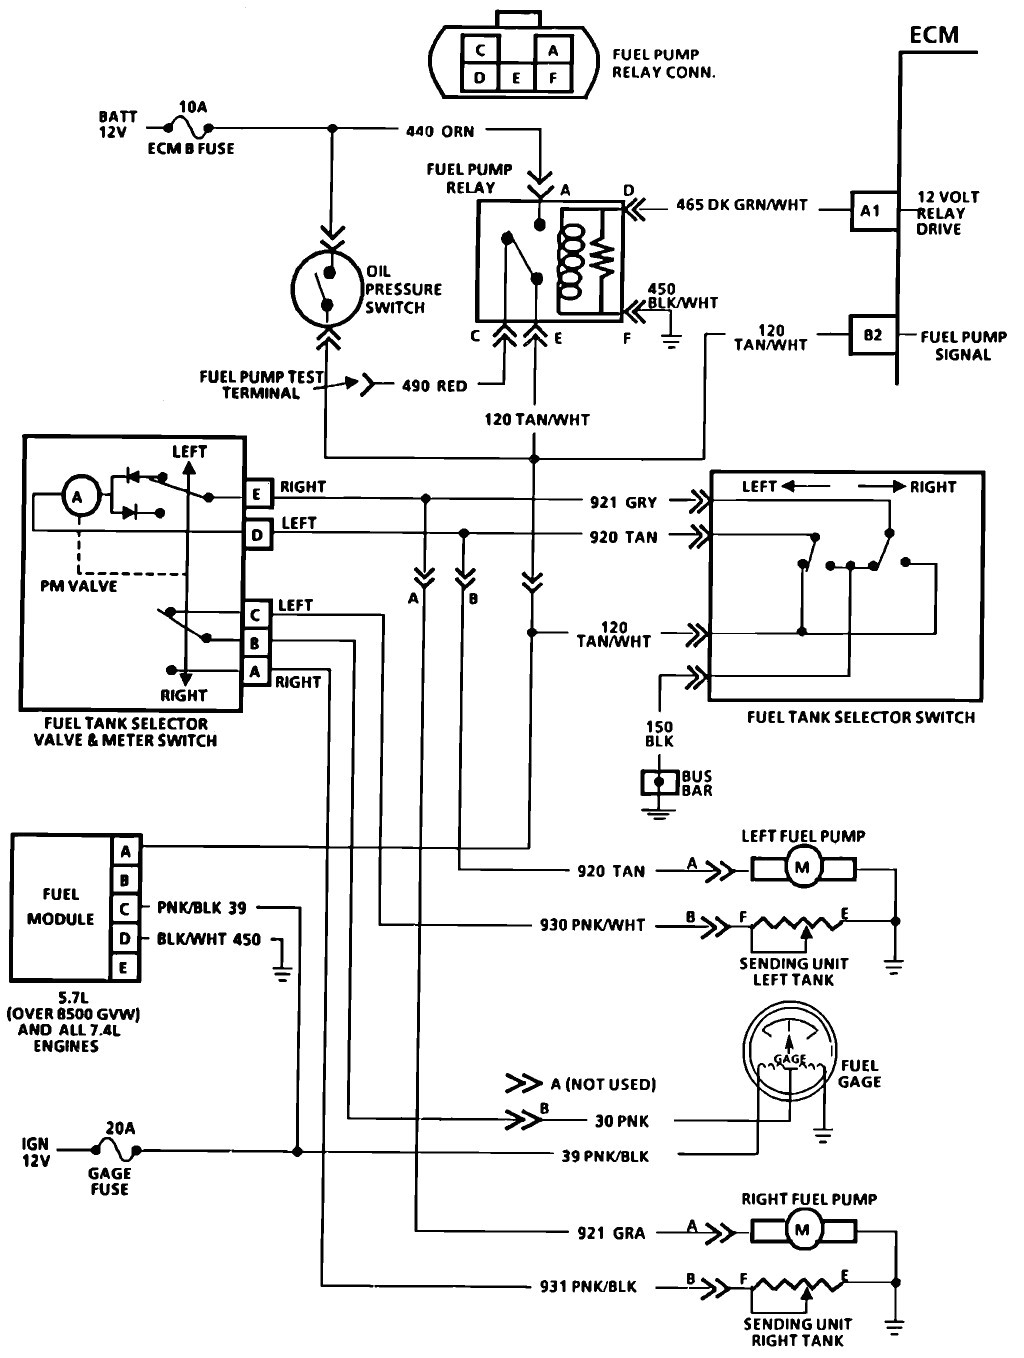 gm fuel pump wiring wiring diagram centre fuel pump relay wiring diagram gm truck